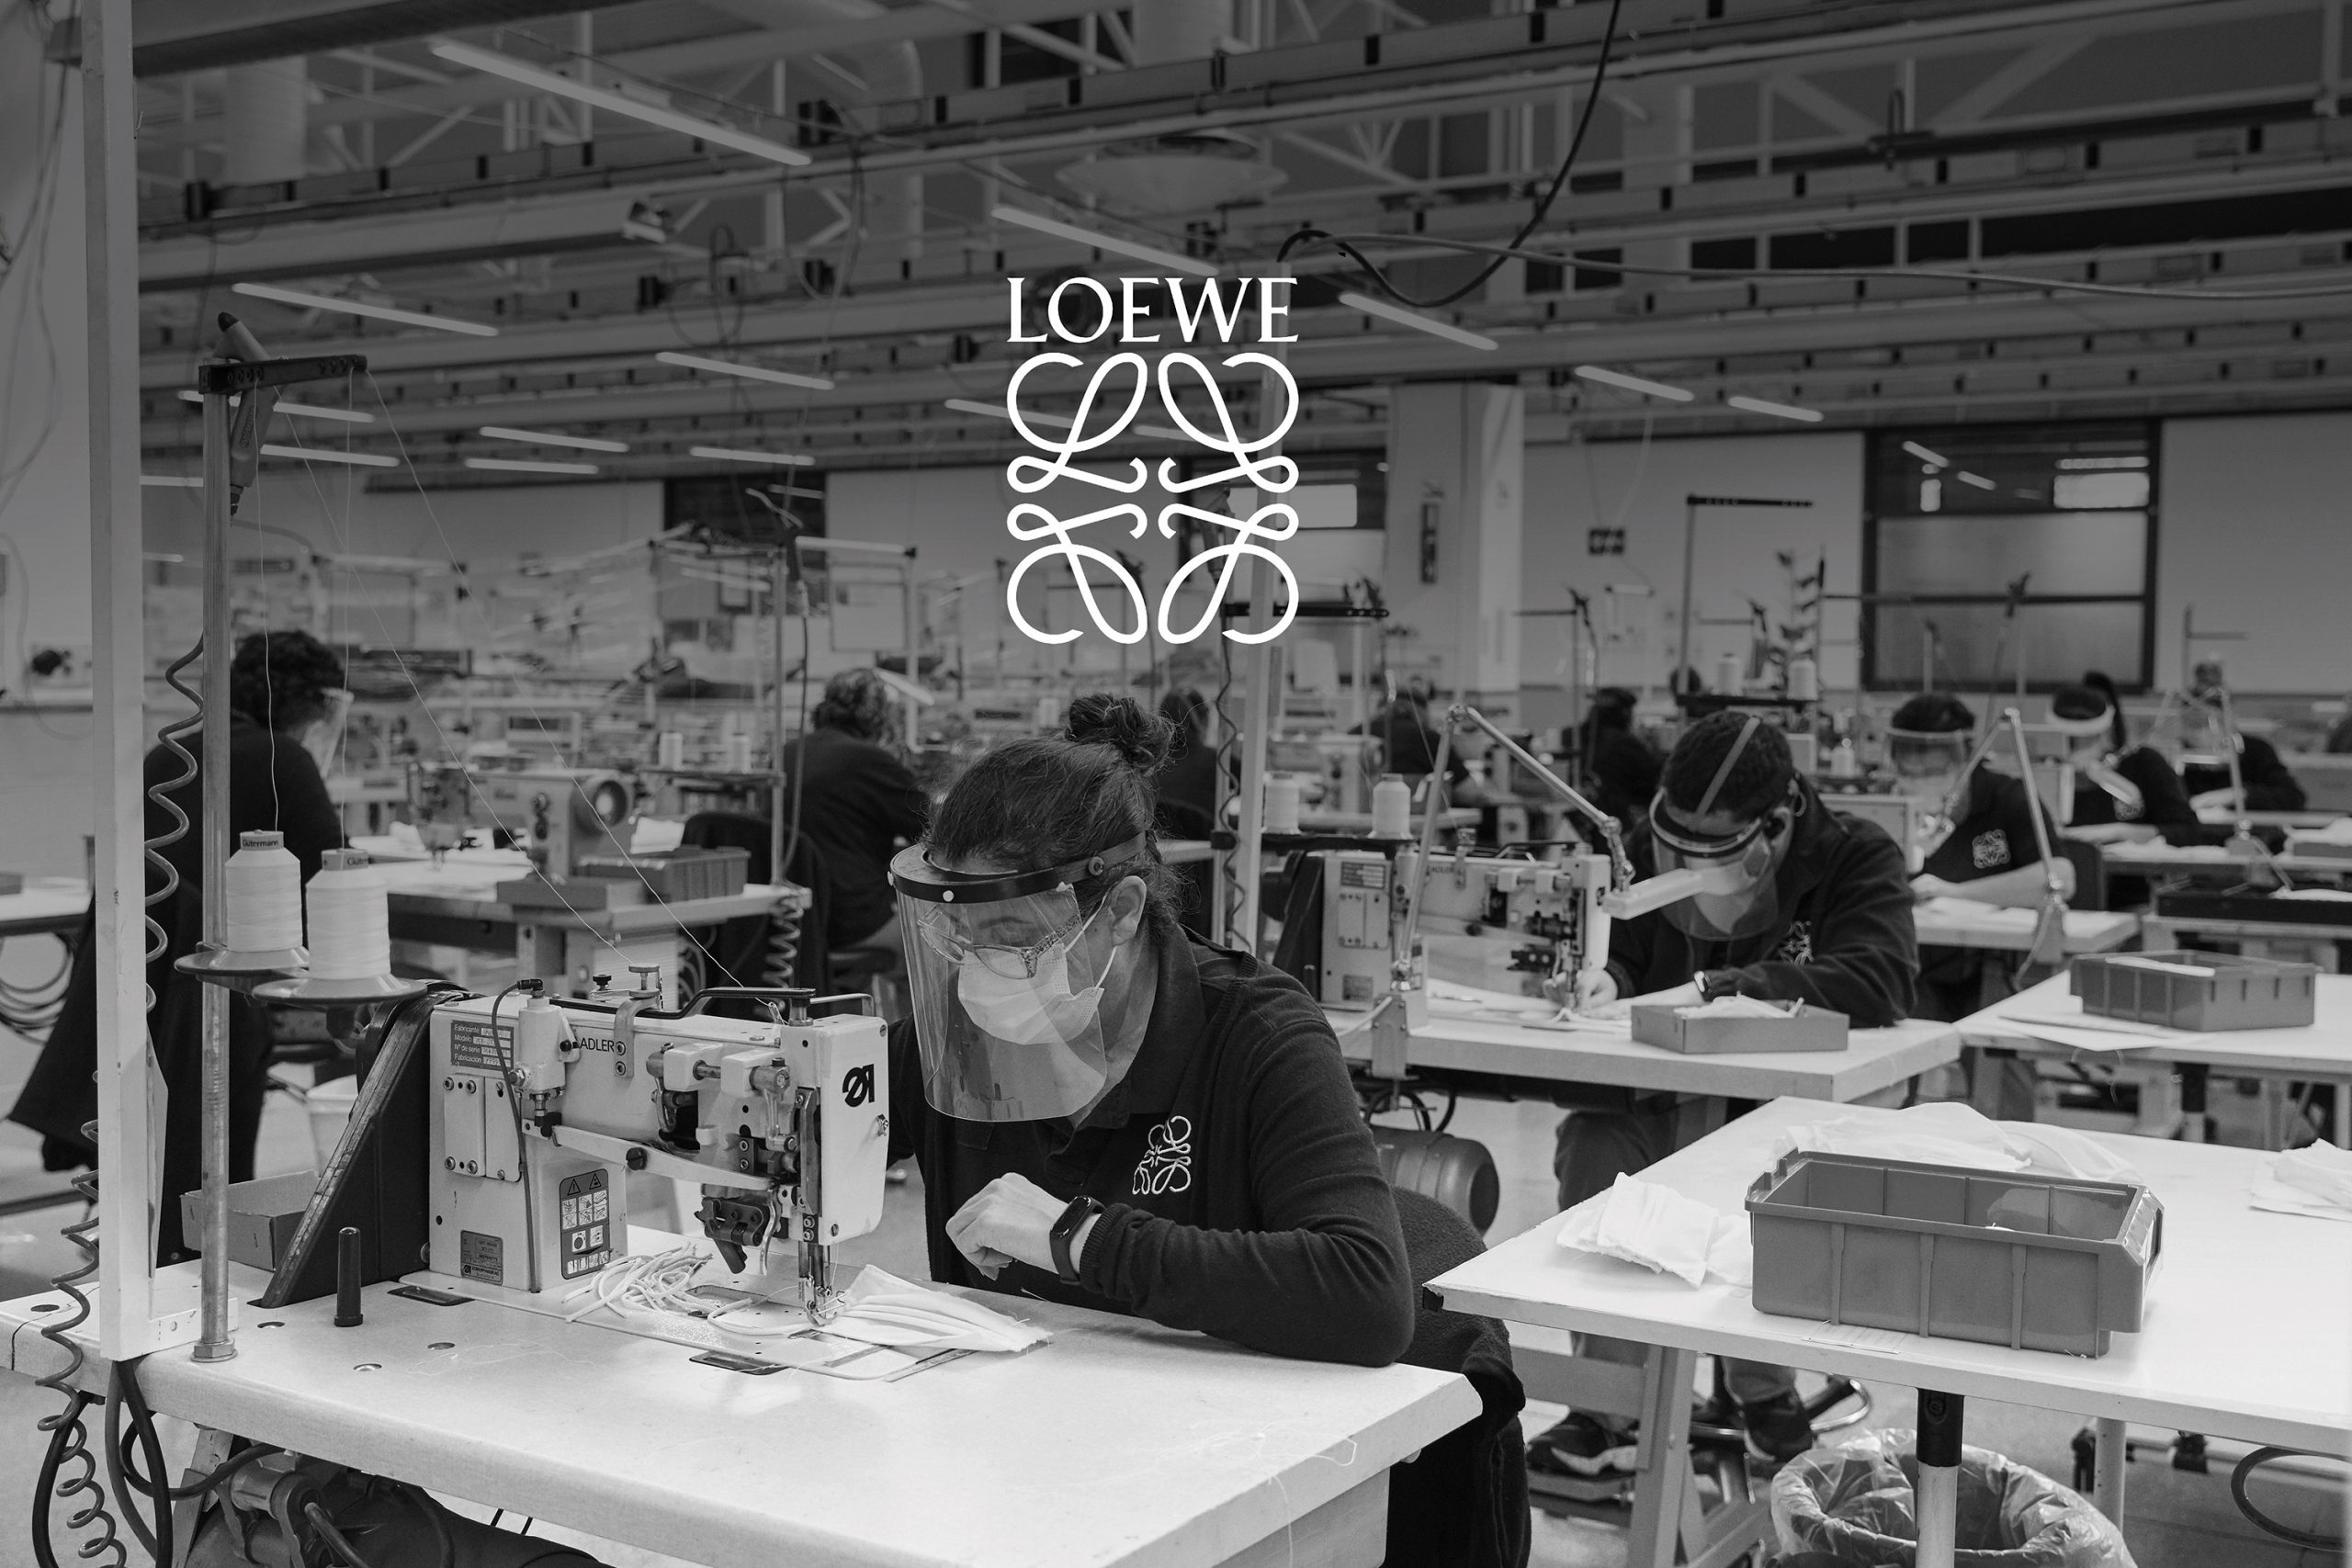 Loewe Donates to Fight Covid-19